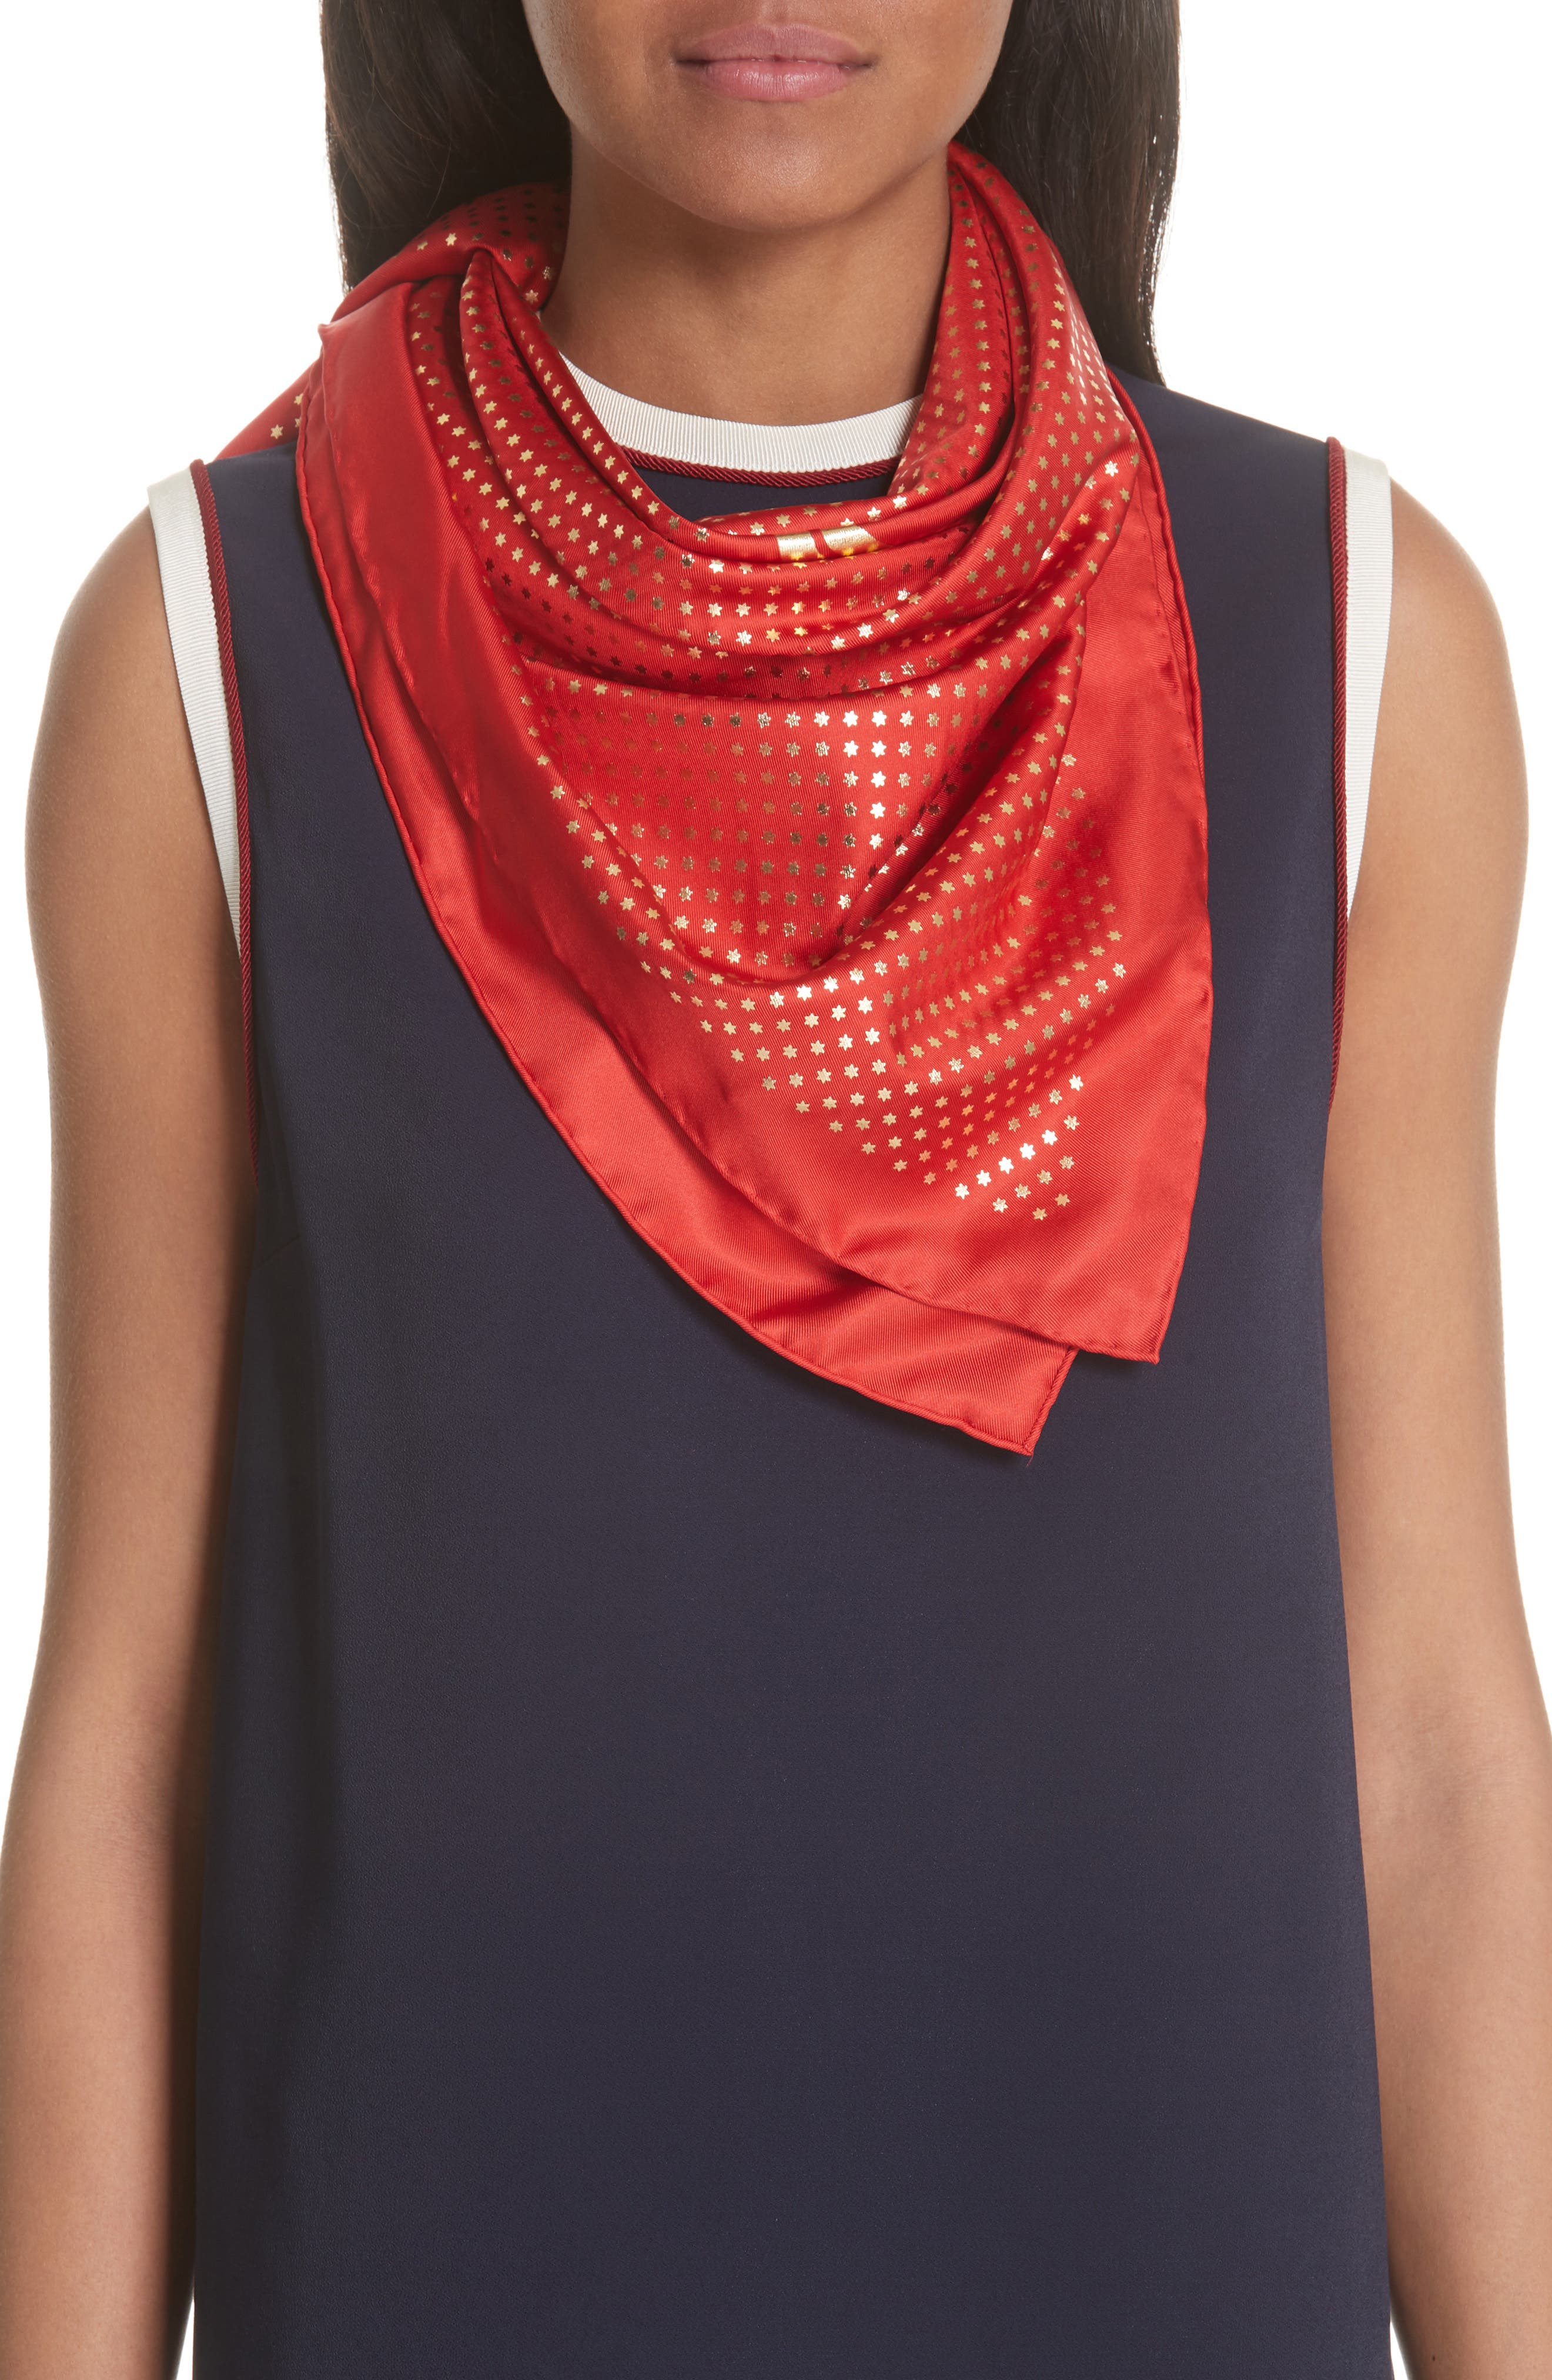 Guccy Star Foulard Silk Twill Scarf,                             Alternate thumbnail 2, color,                             FLAME